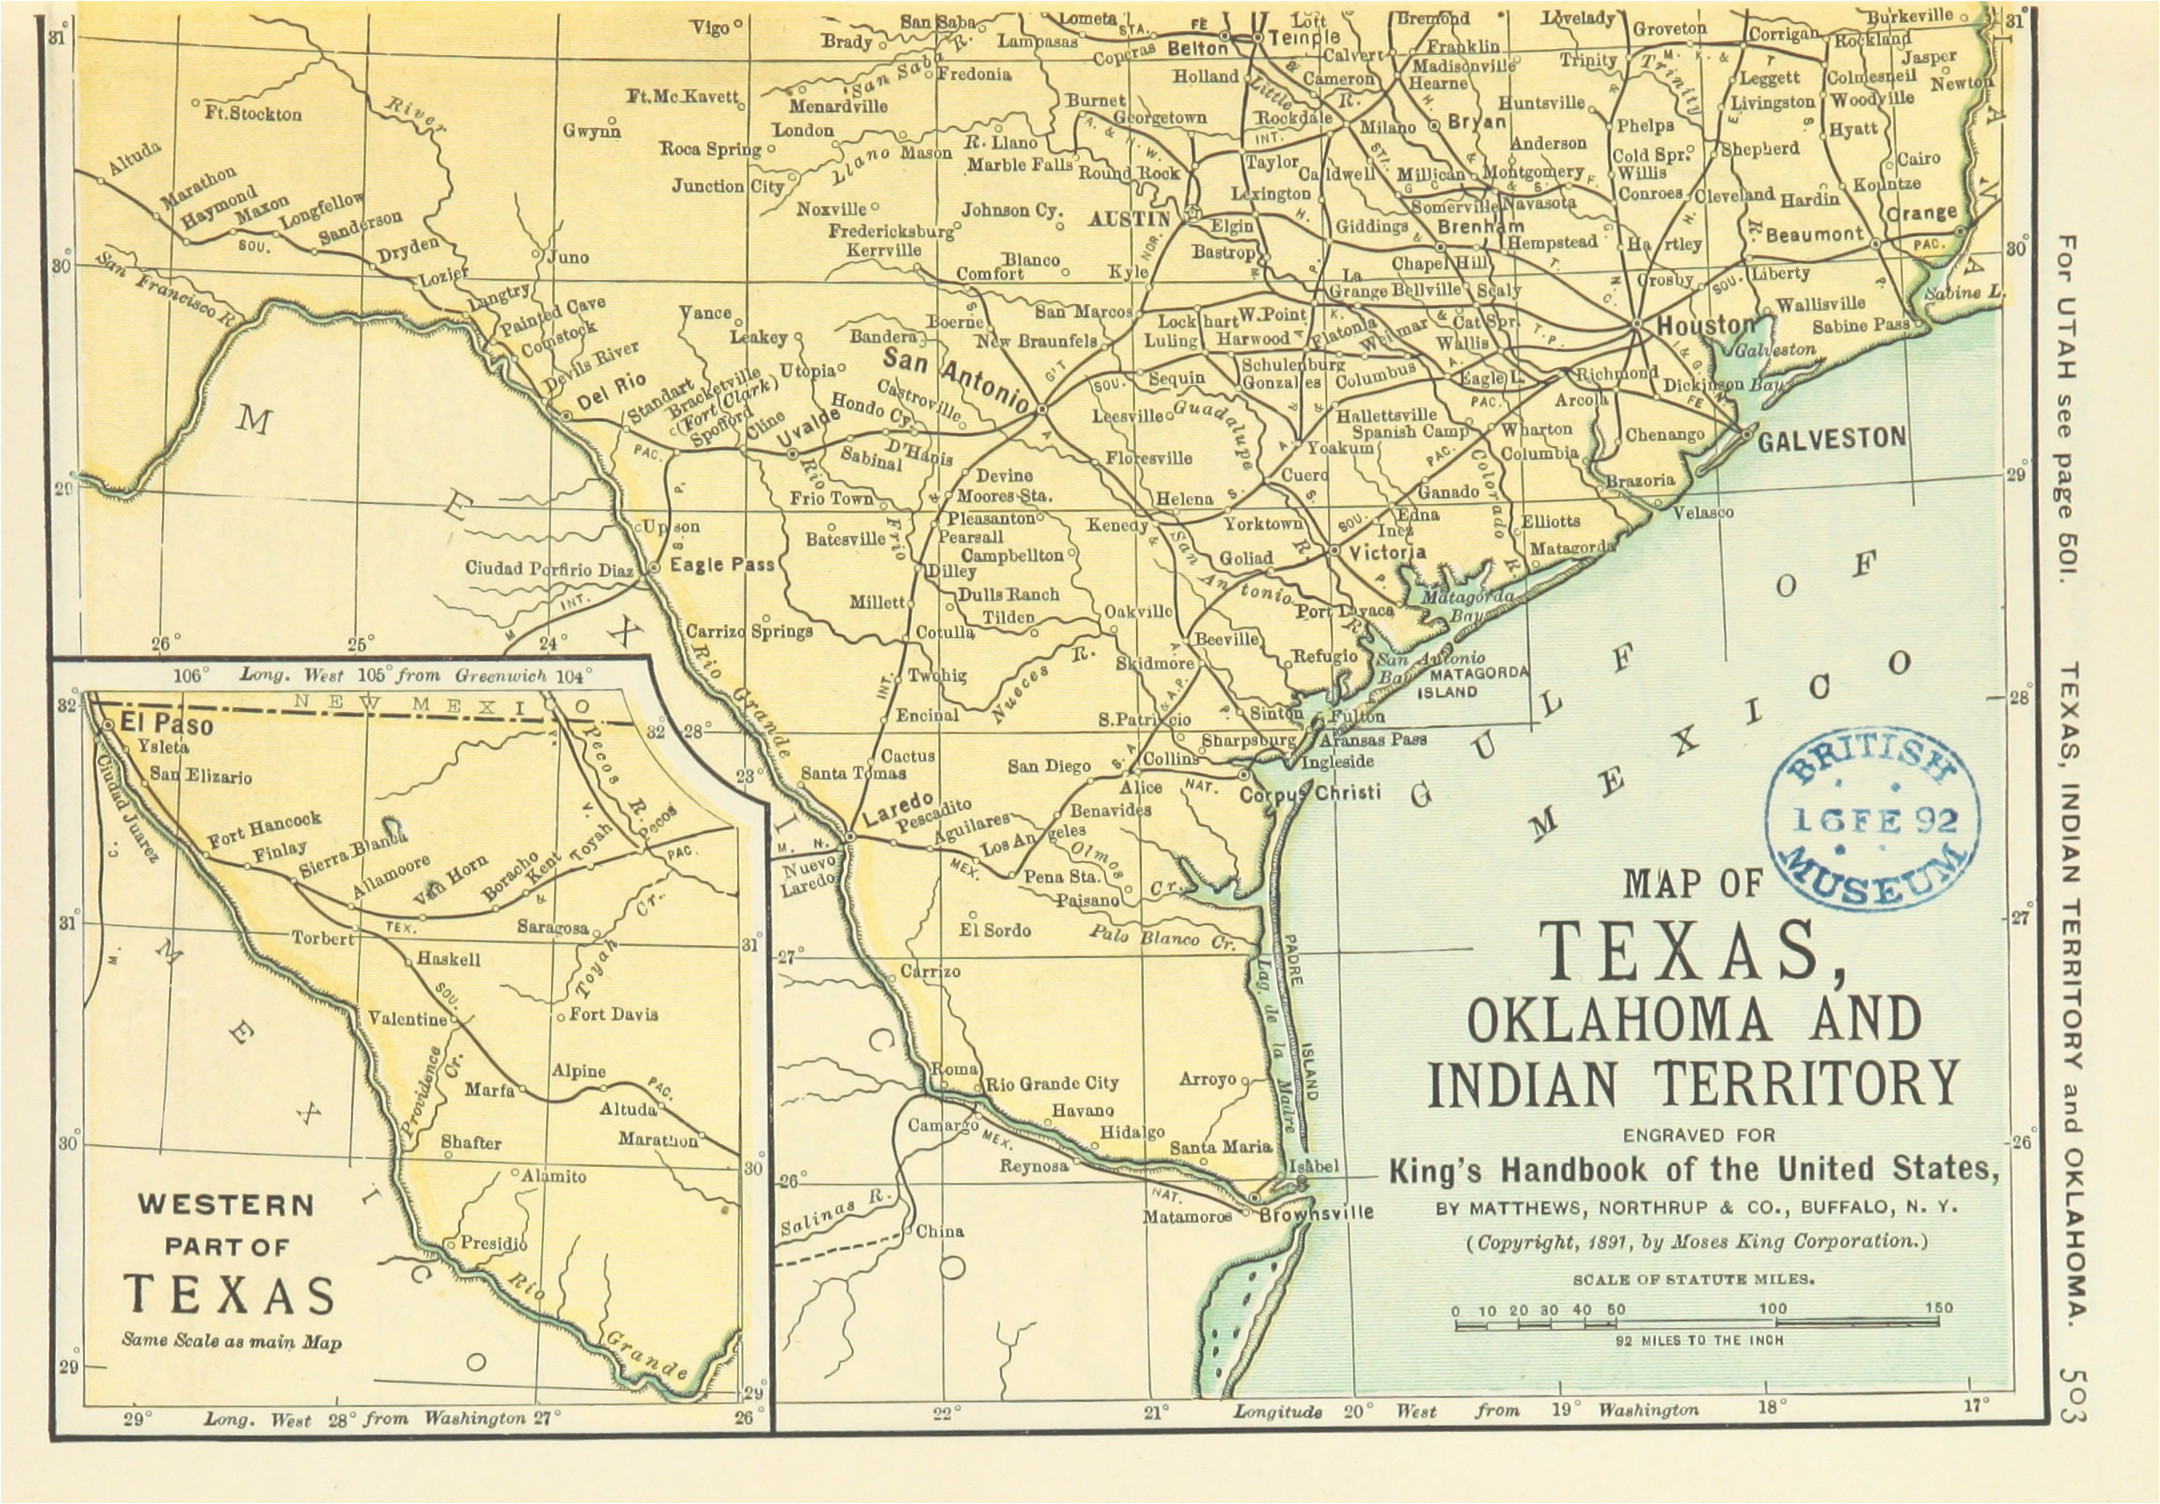 Indian S In Texas Map on indians iowa map, indians new york map, indians in tennessee, indians in north carolina, indians utah map, indians of central texas, indians in texas history, indians in idaho, indians in washington state, indians in pennsylvania, indians ohio map, indians in rhode island, indians in south carolina, tonkawa indians map, indians in north dakota, indians in wisconsin,